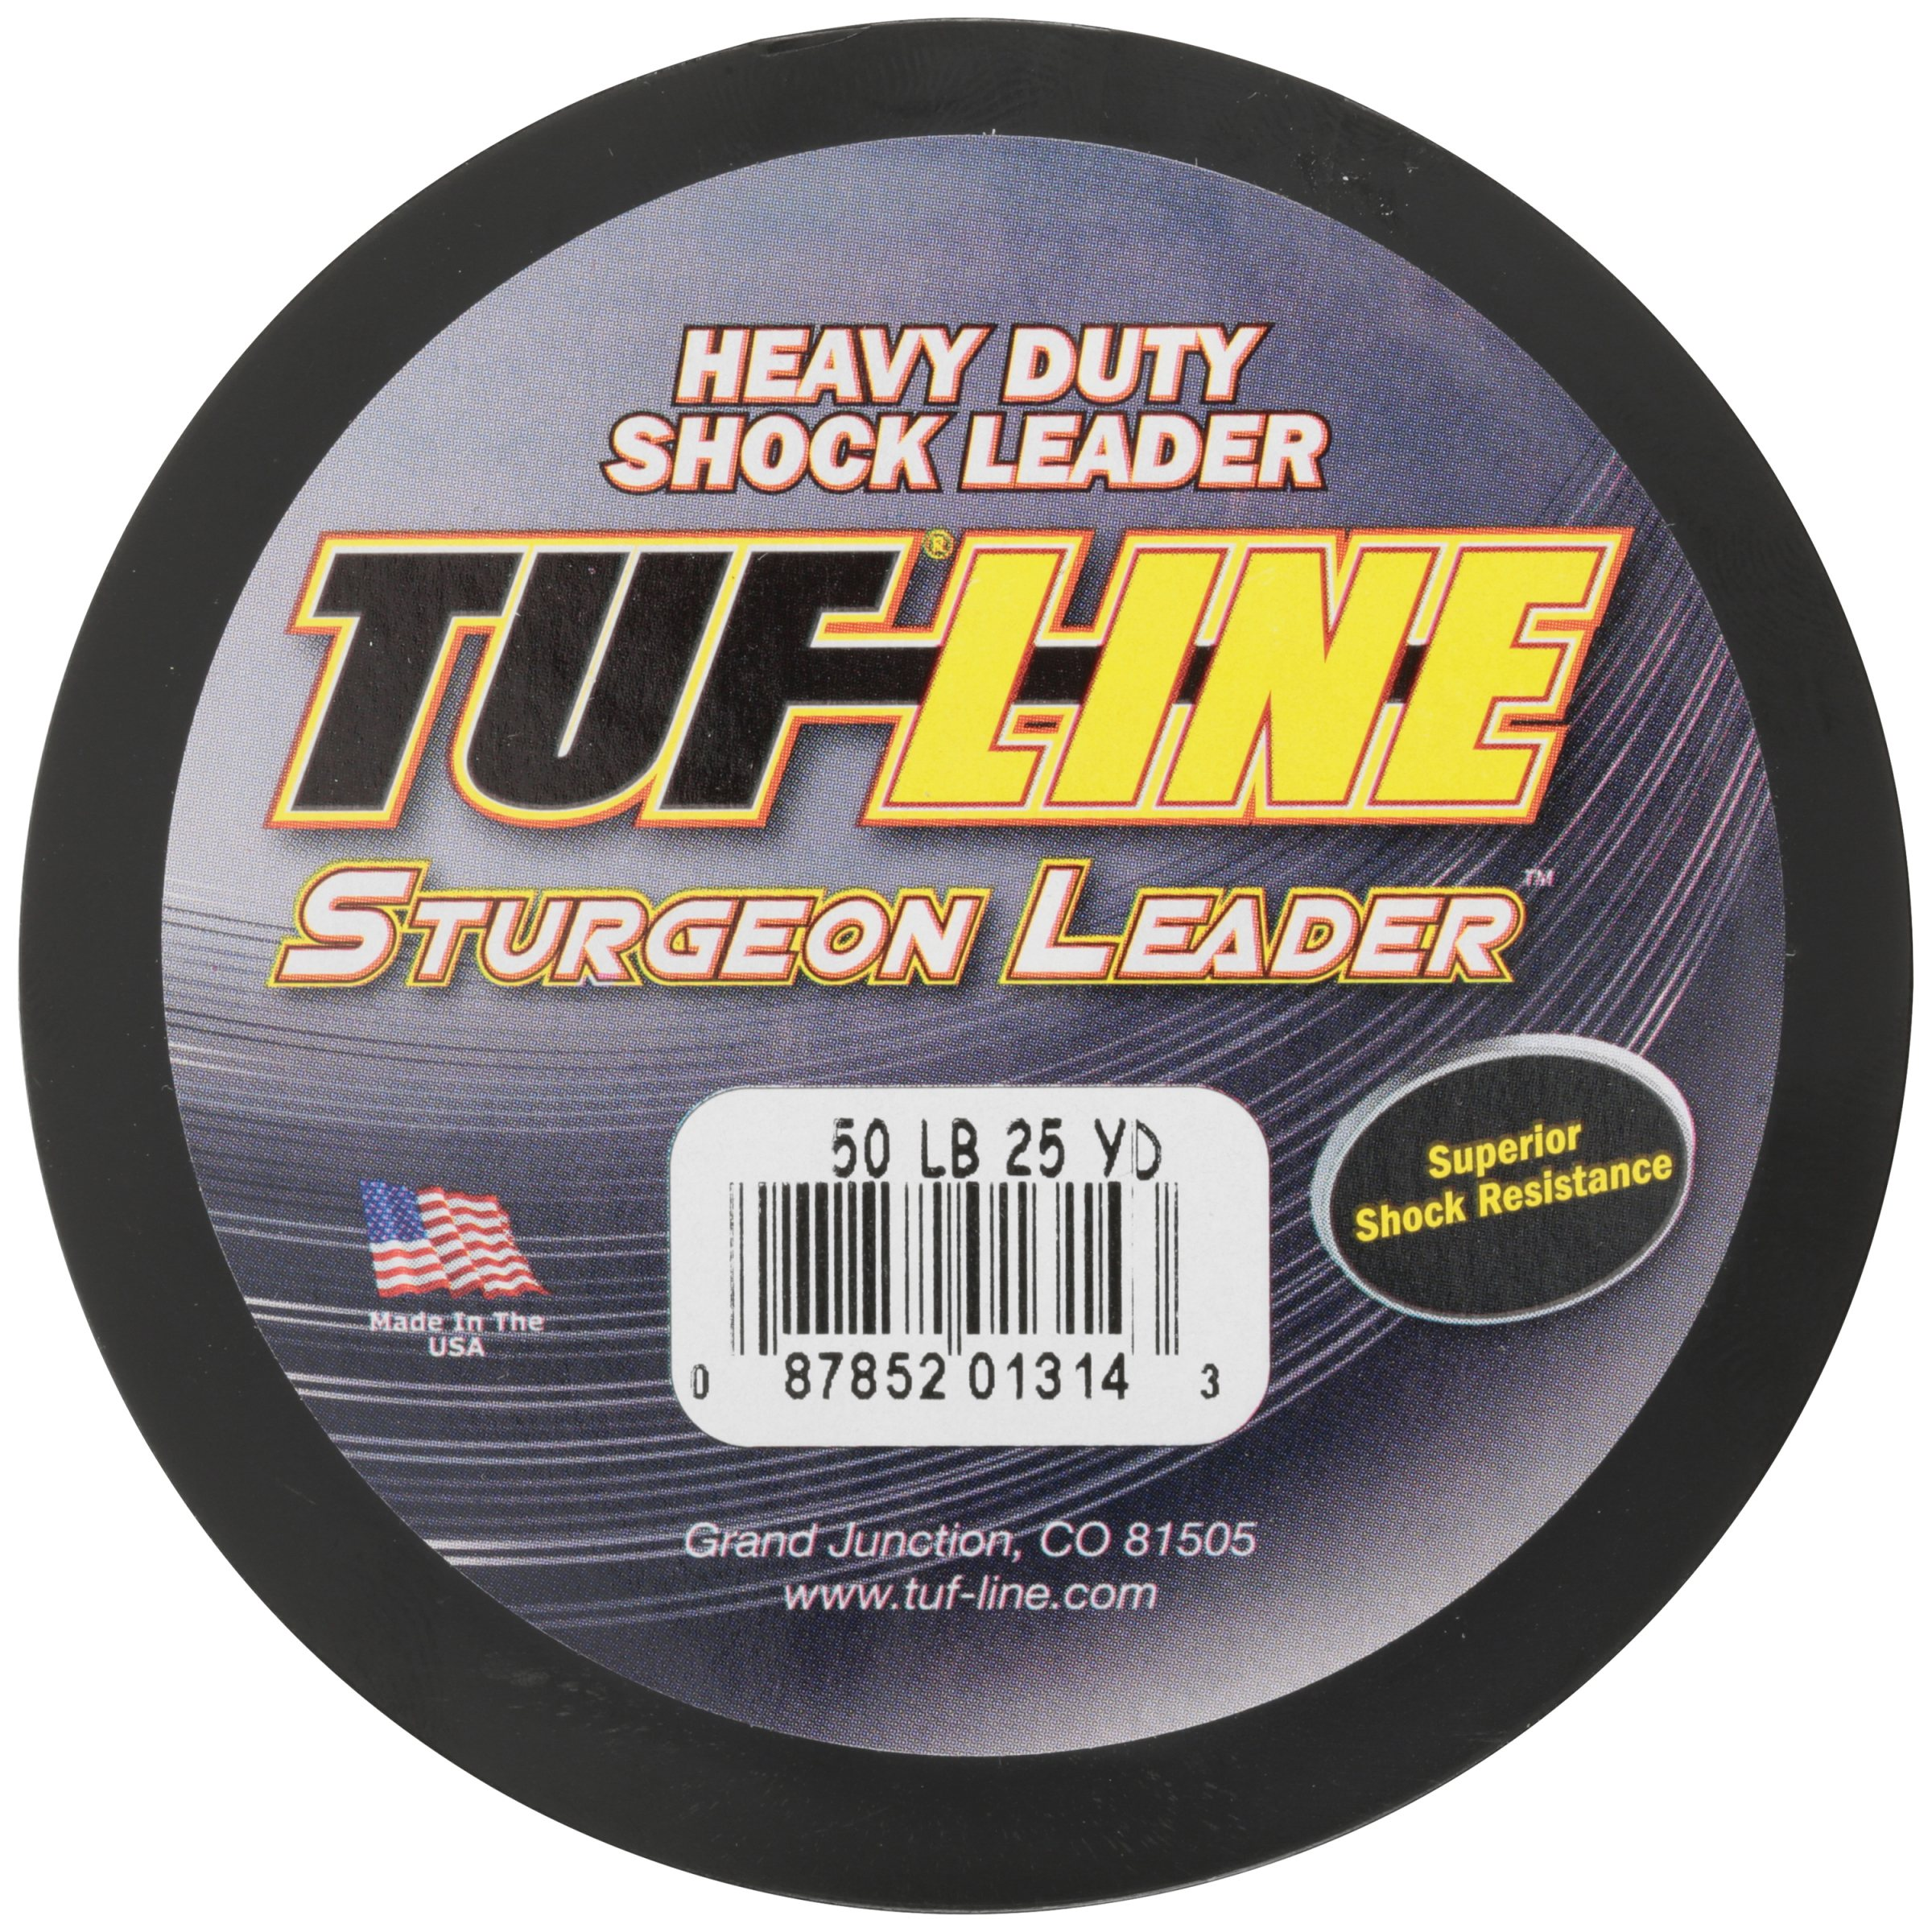 Tuf Line Sturgeon Leader Heavy Duty Shock Leader 25 yd. Fishing Line Carded Pack by Western Filament, Inc.